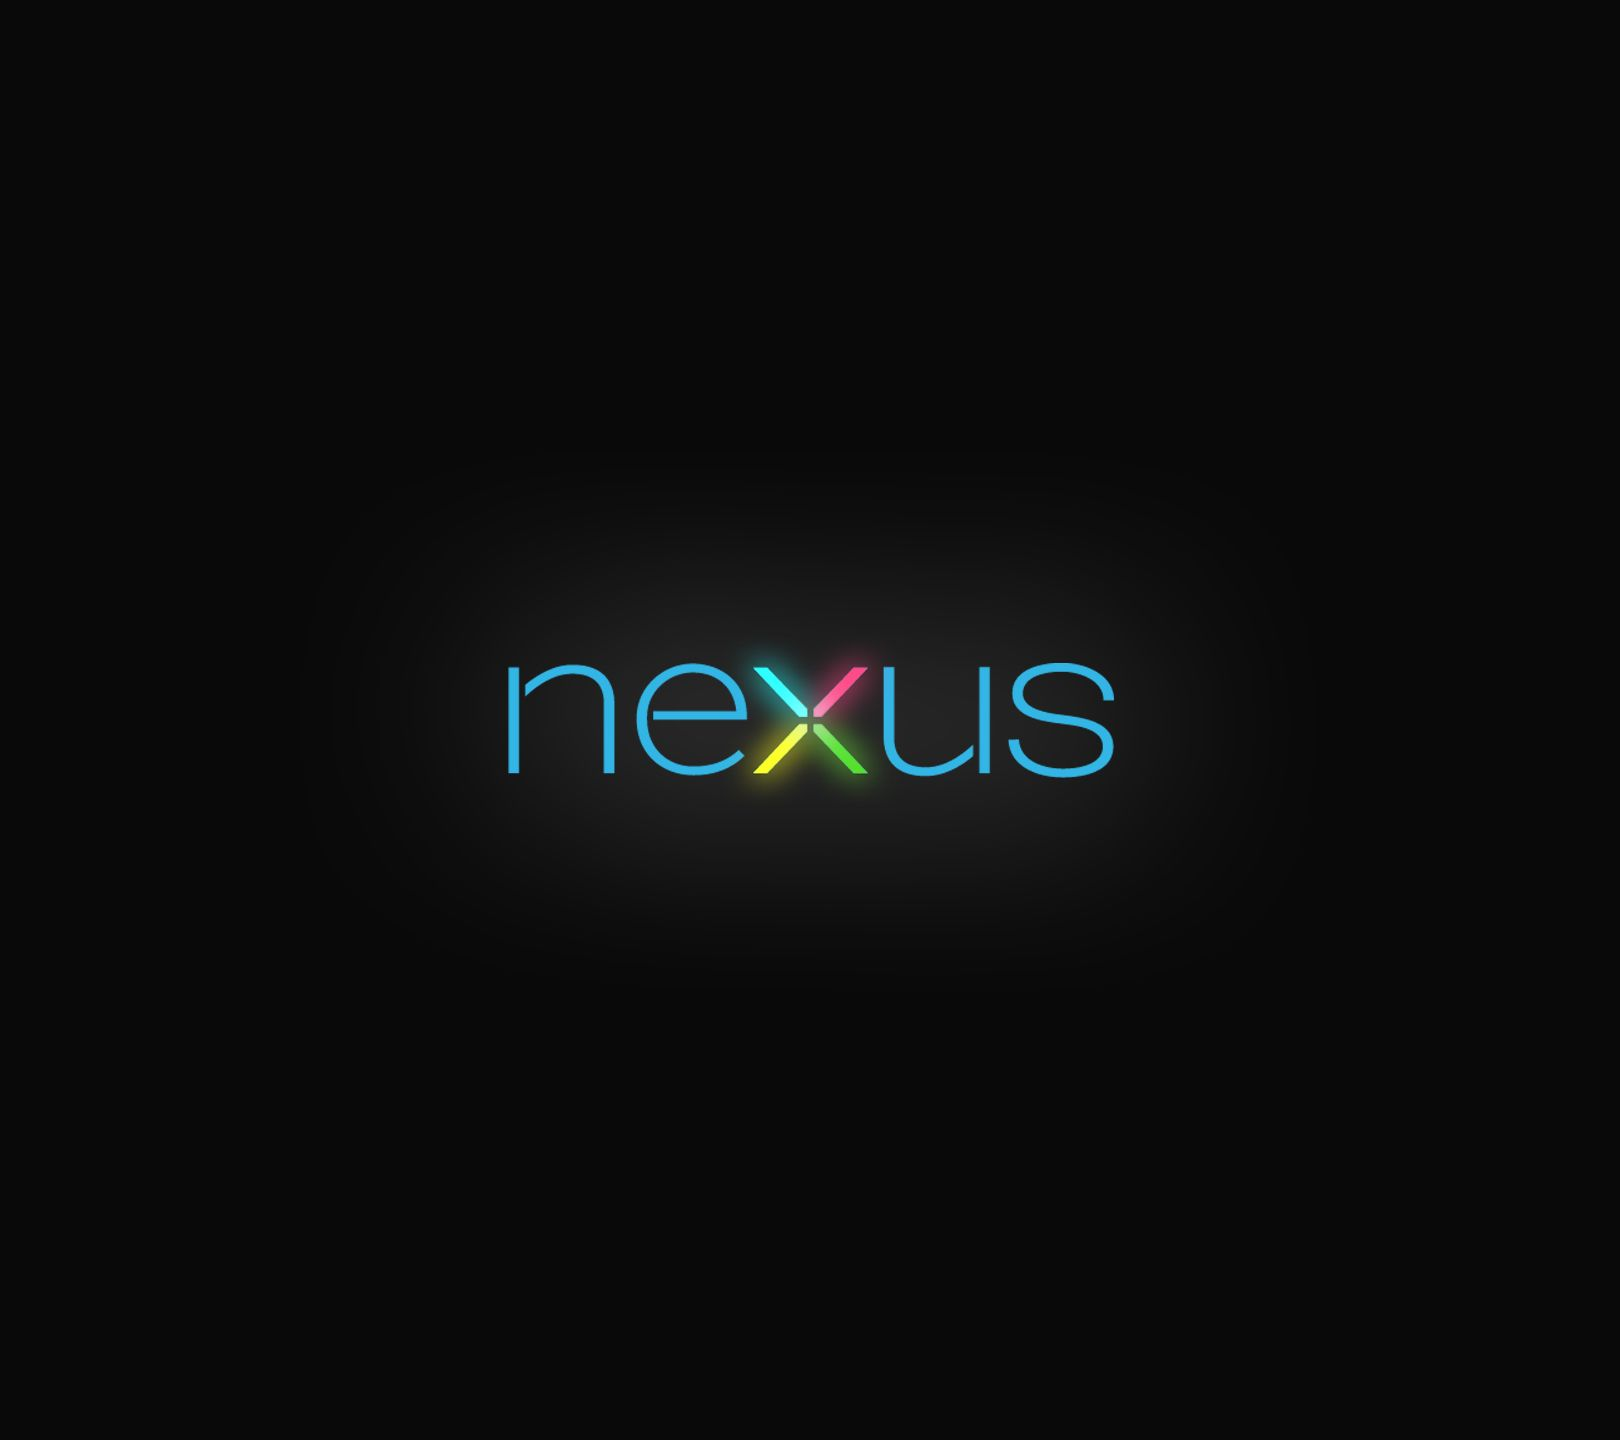 nexus wallpapers download group